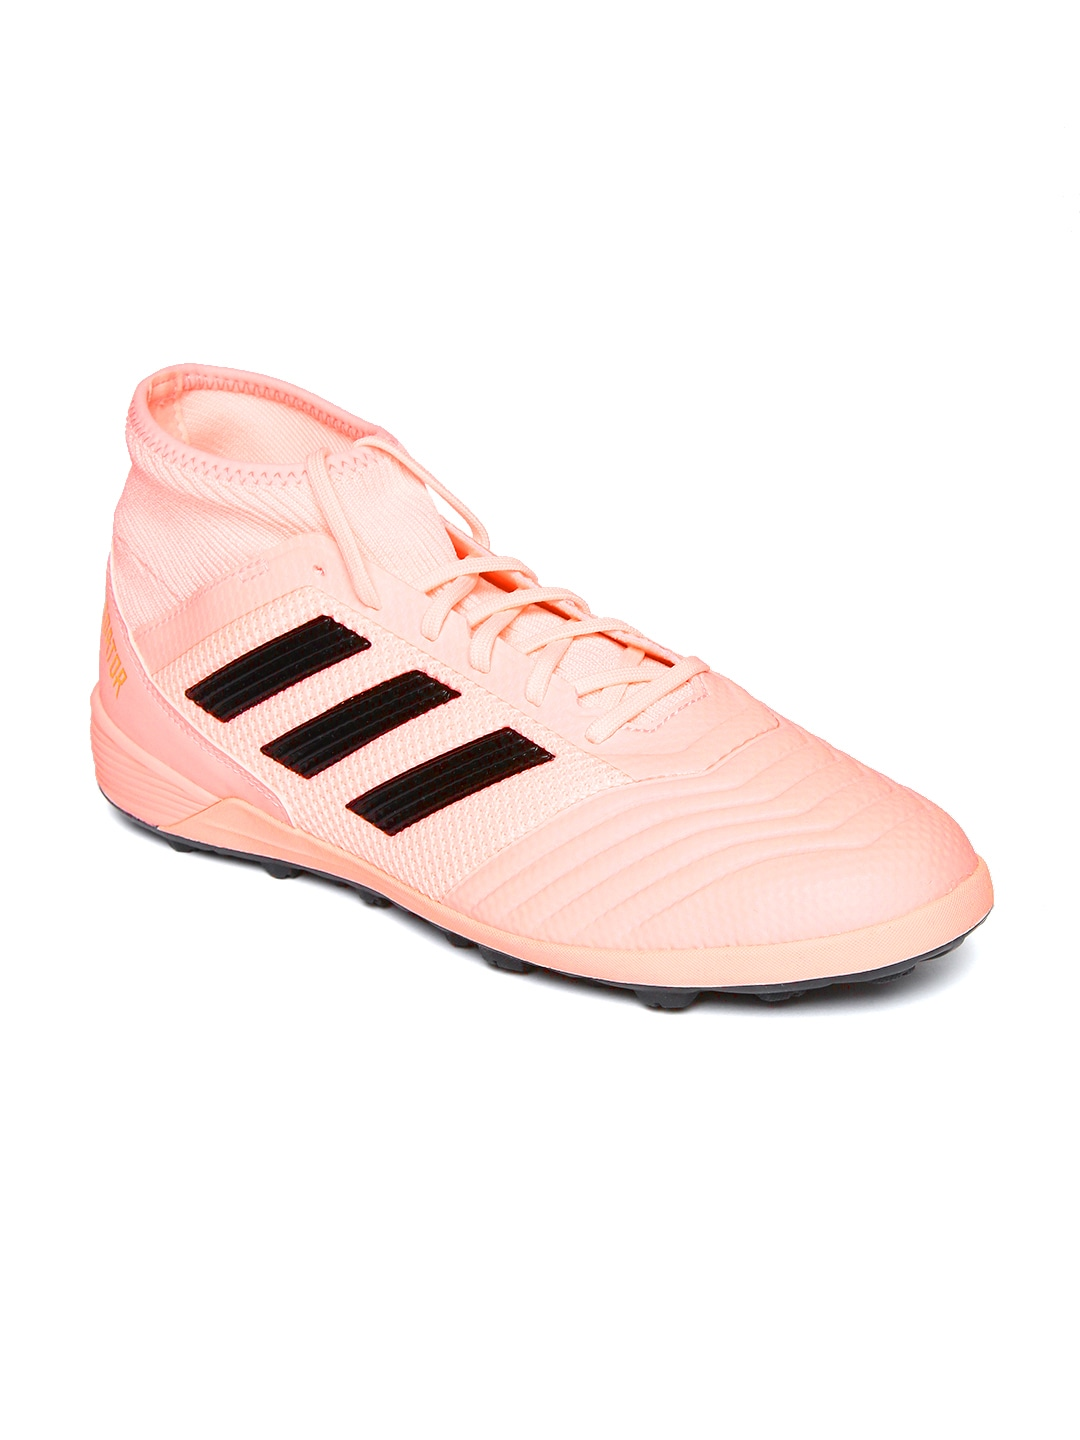 Adidas Neo Label Coneo Qt Shadow Pink